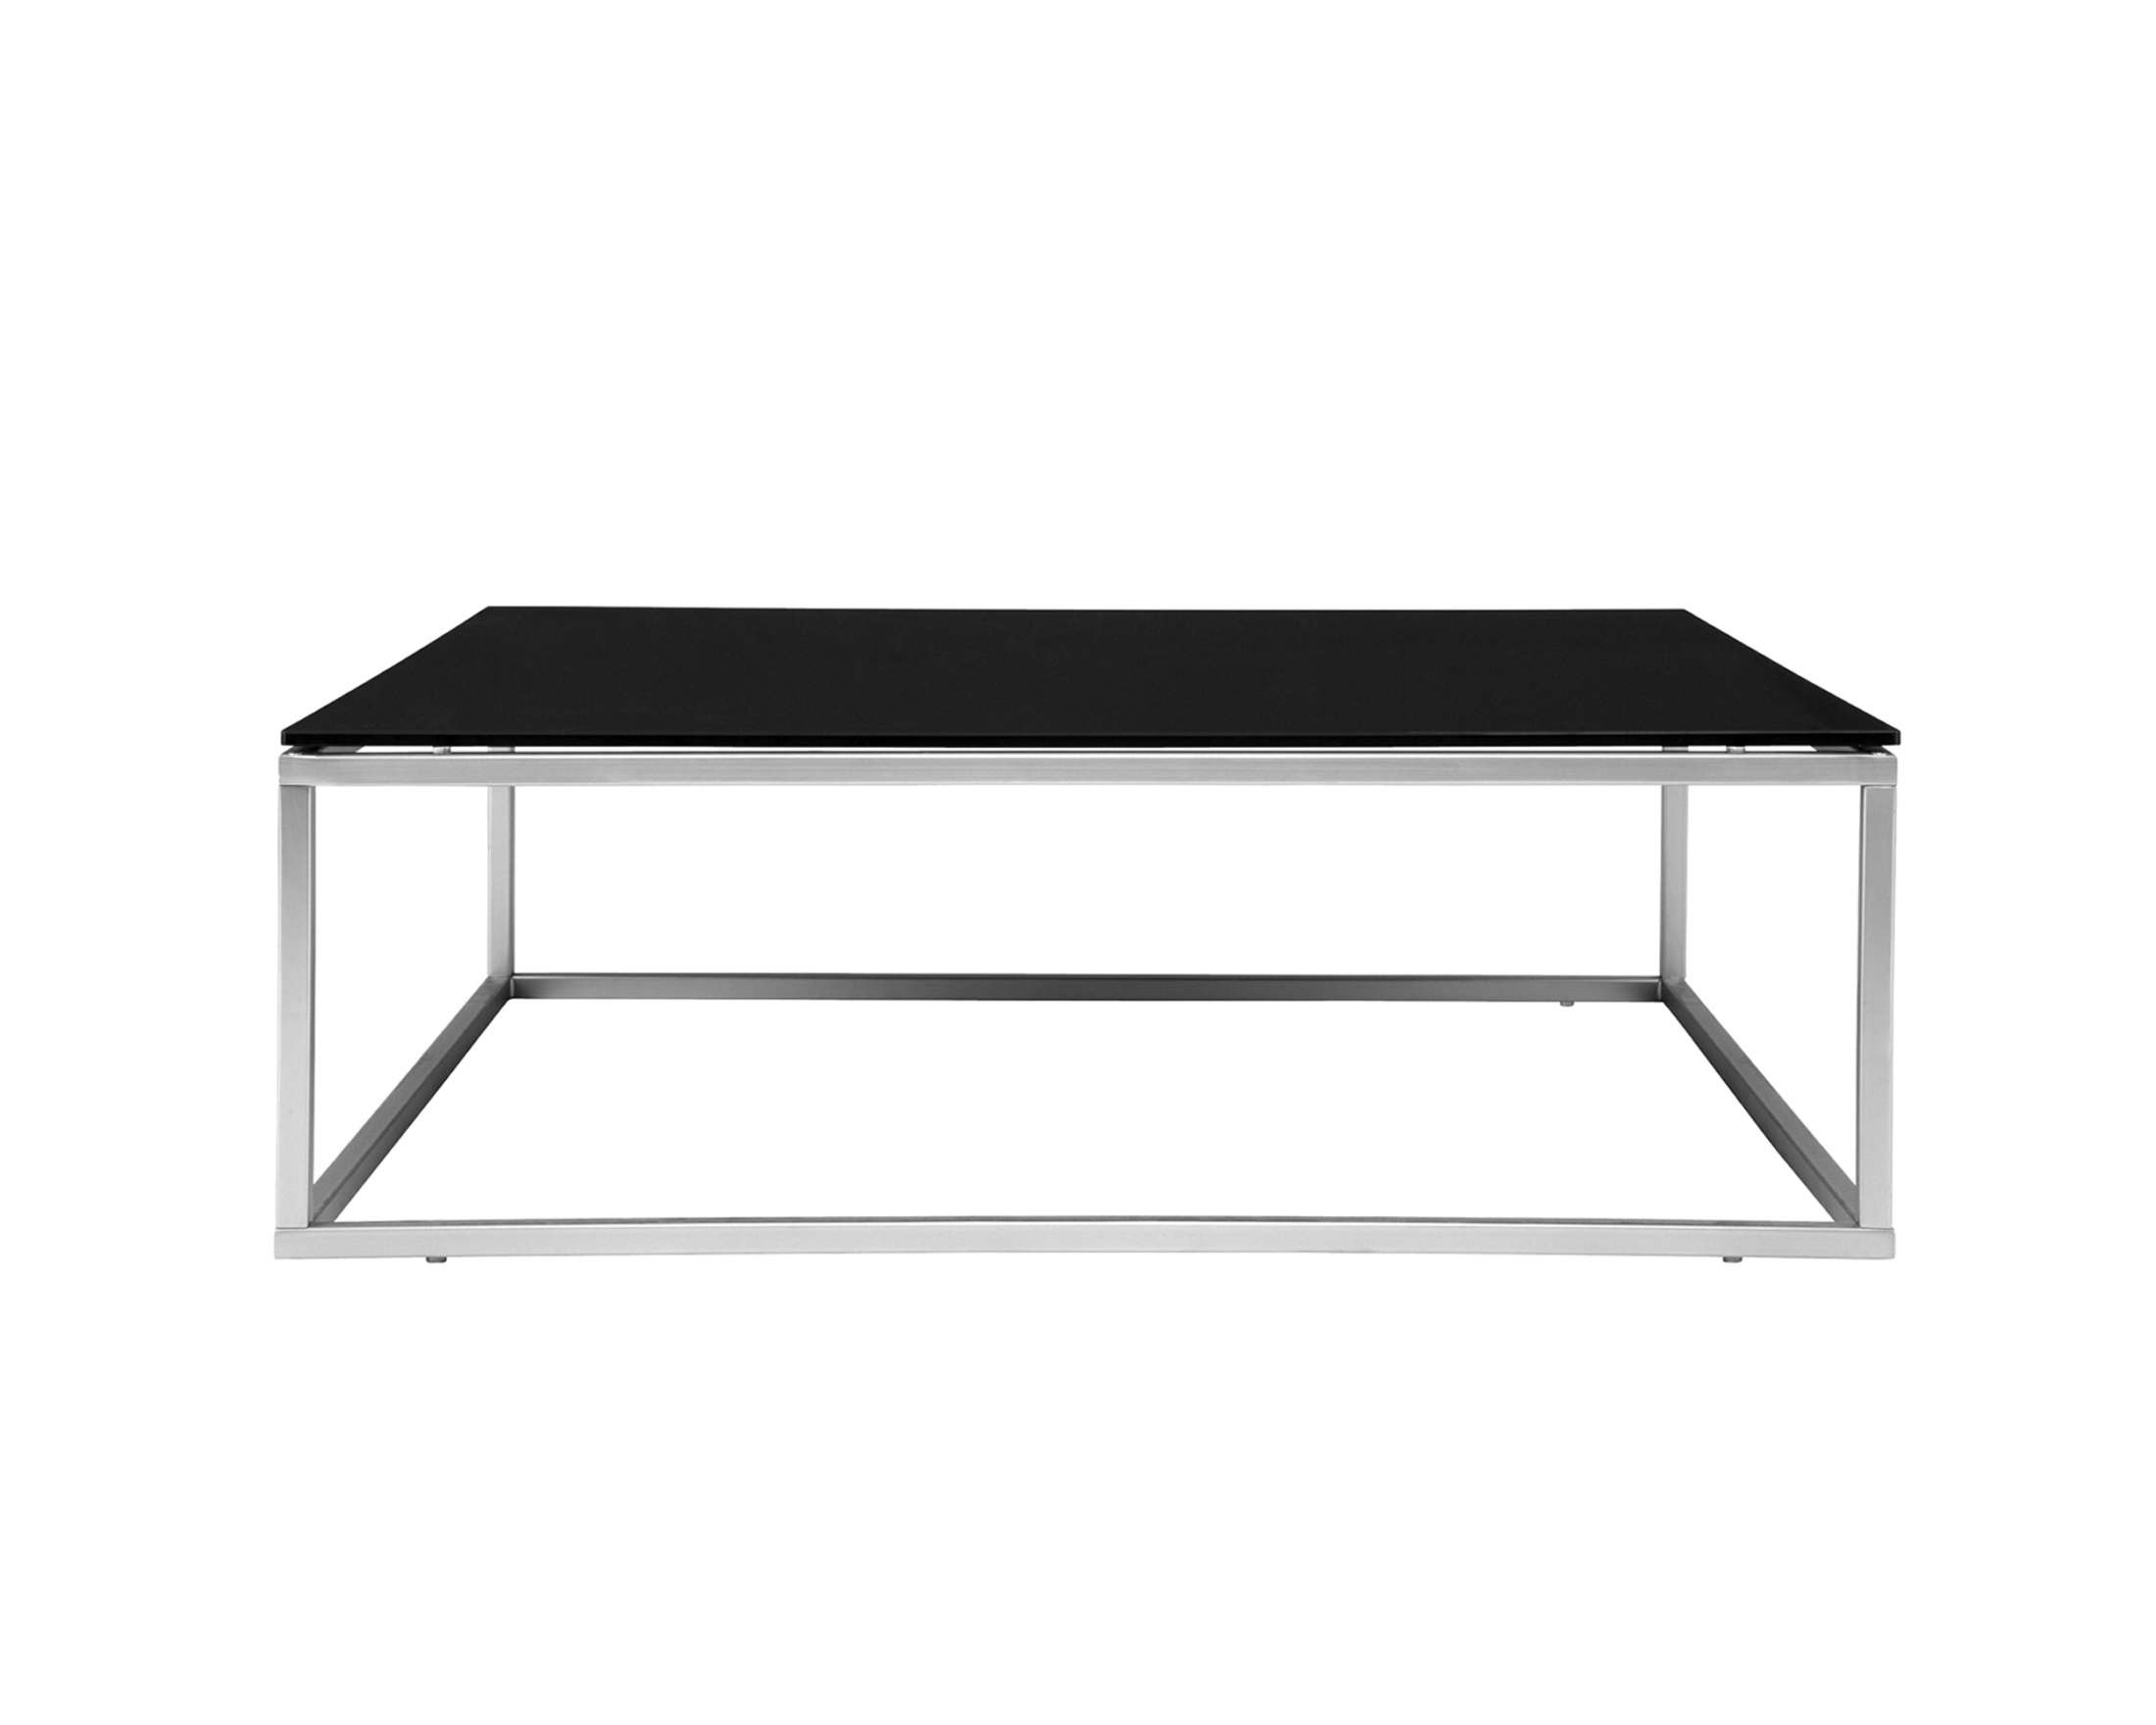 Black Glass Coffee Table With Chrome Legs • Coffee Table Design Pertaining To Most Popular Coffee Tables With Chrome Legs (View 1 of 20)